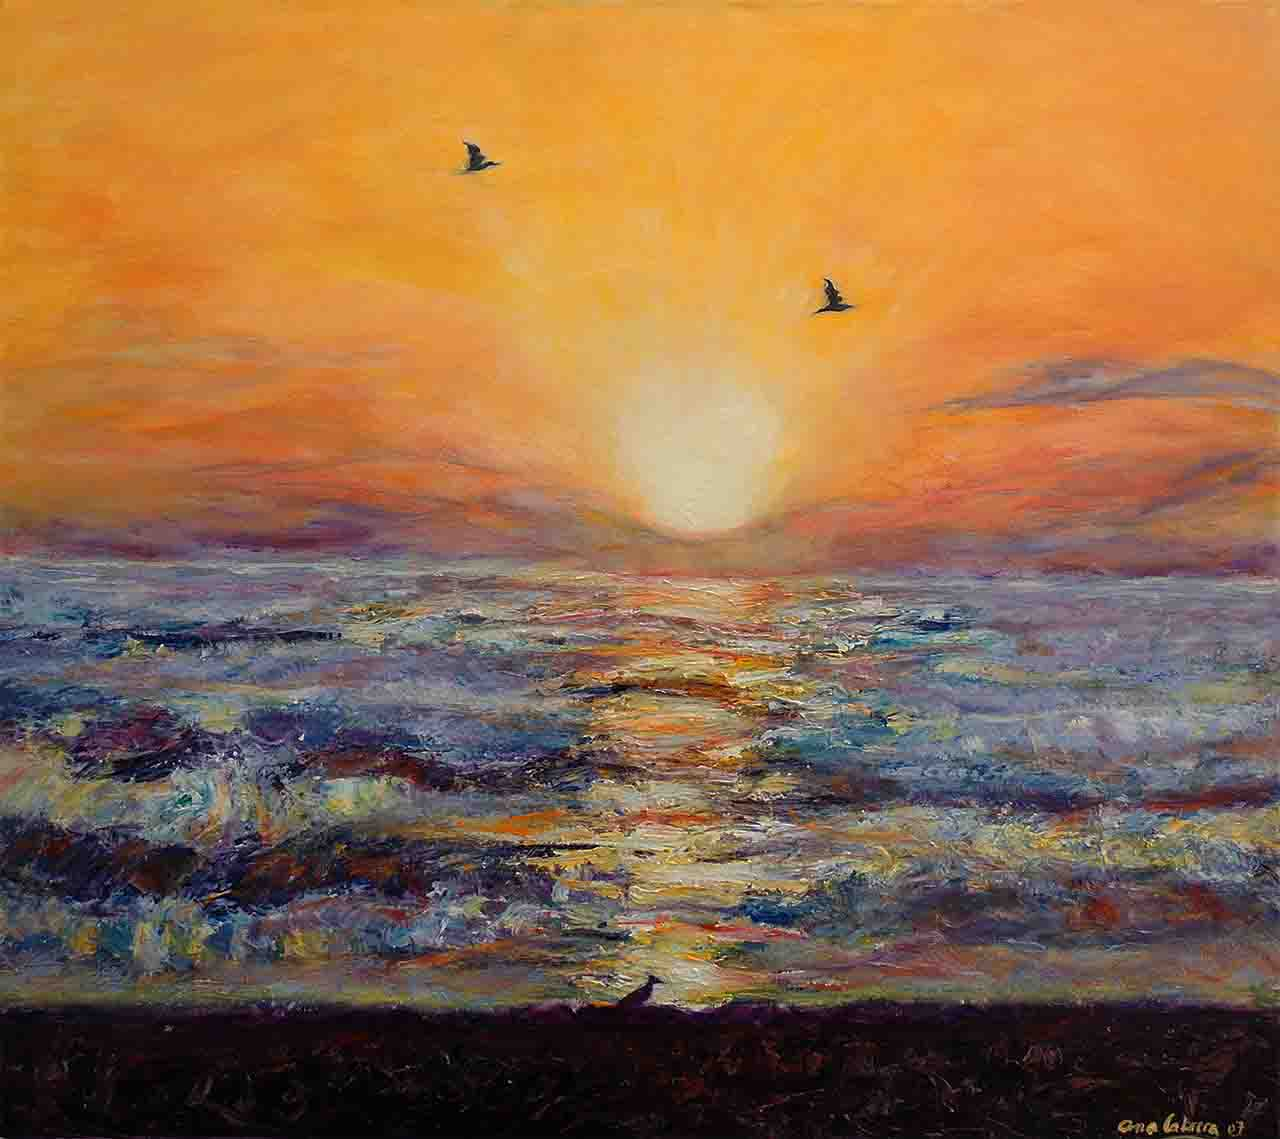 Sunrise at sea that is celebrated by birds in a golden sky by the rays of the rising sun, acrylic on canvas